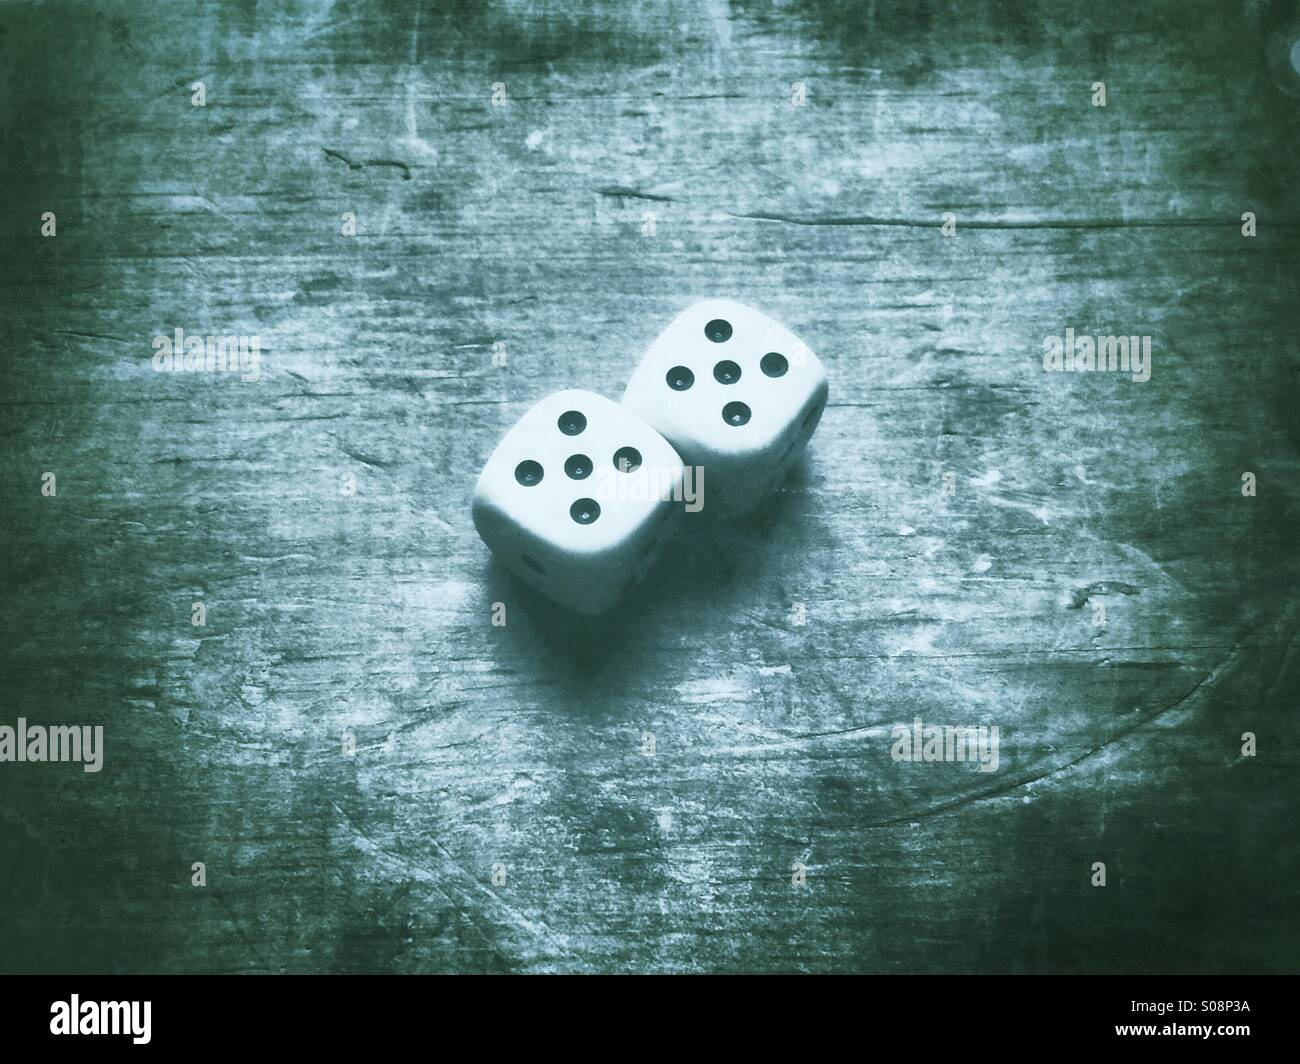 Pair of dice - Stock Image